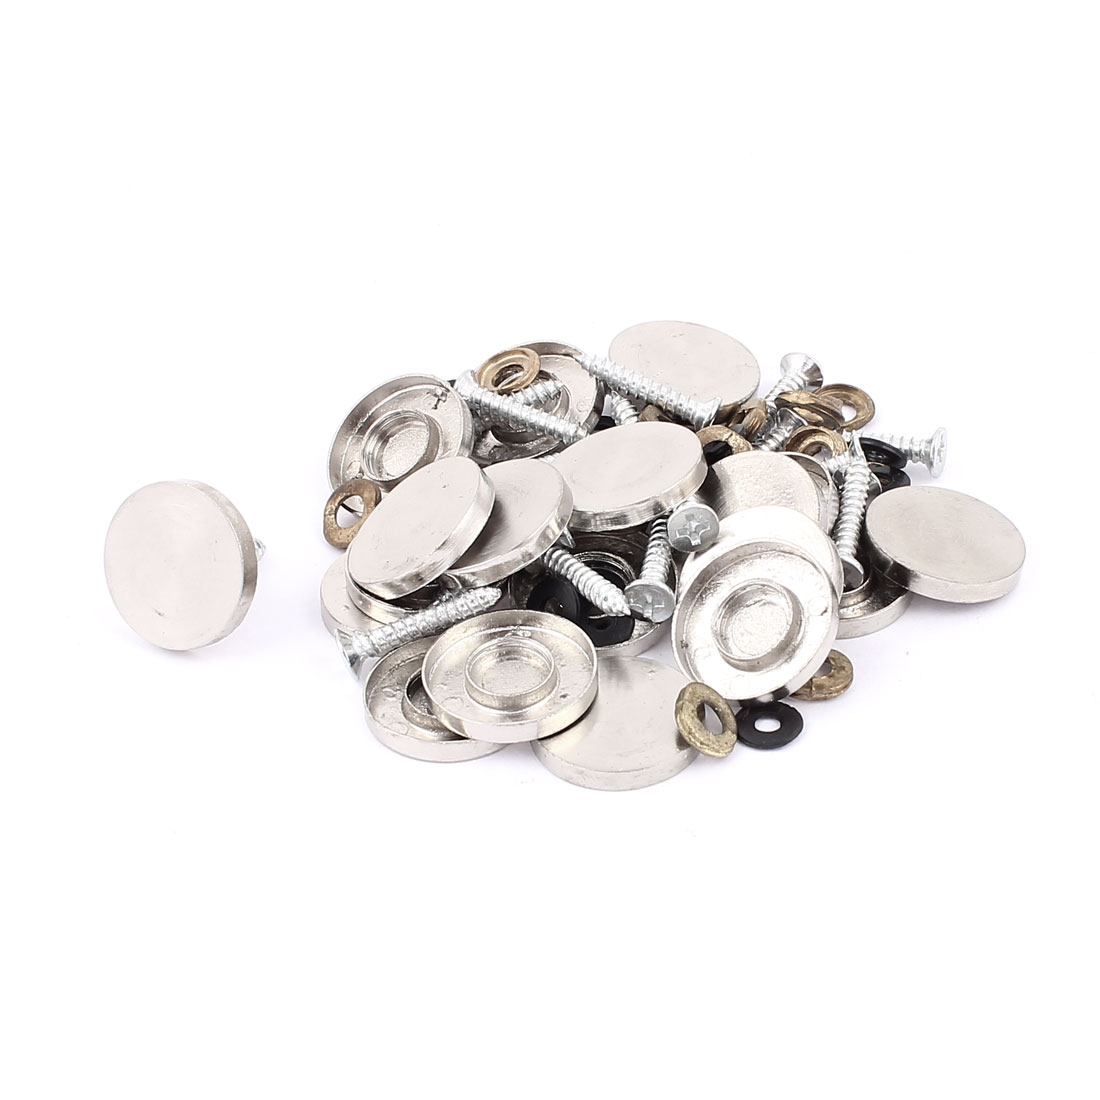 3.5mm Thread Round Flat Decor Mirror Cap Screw Nails Silver Tone 20 Pcs